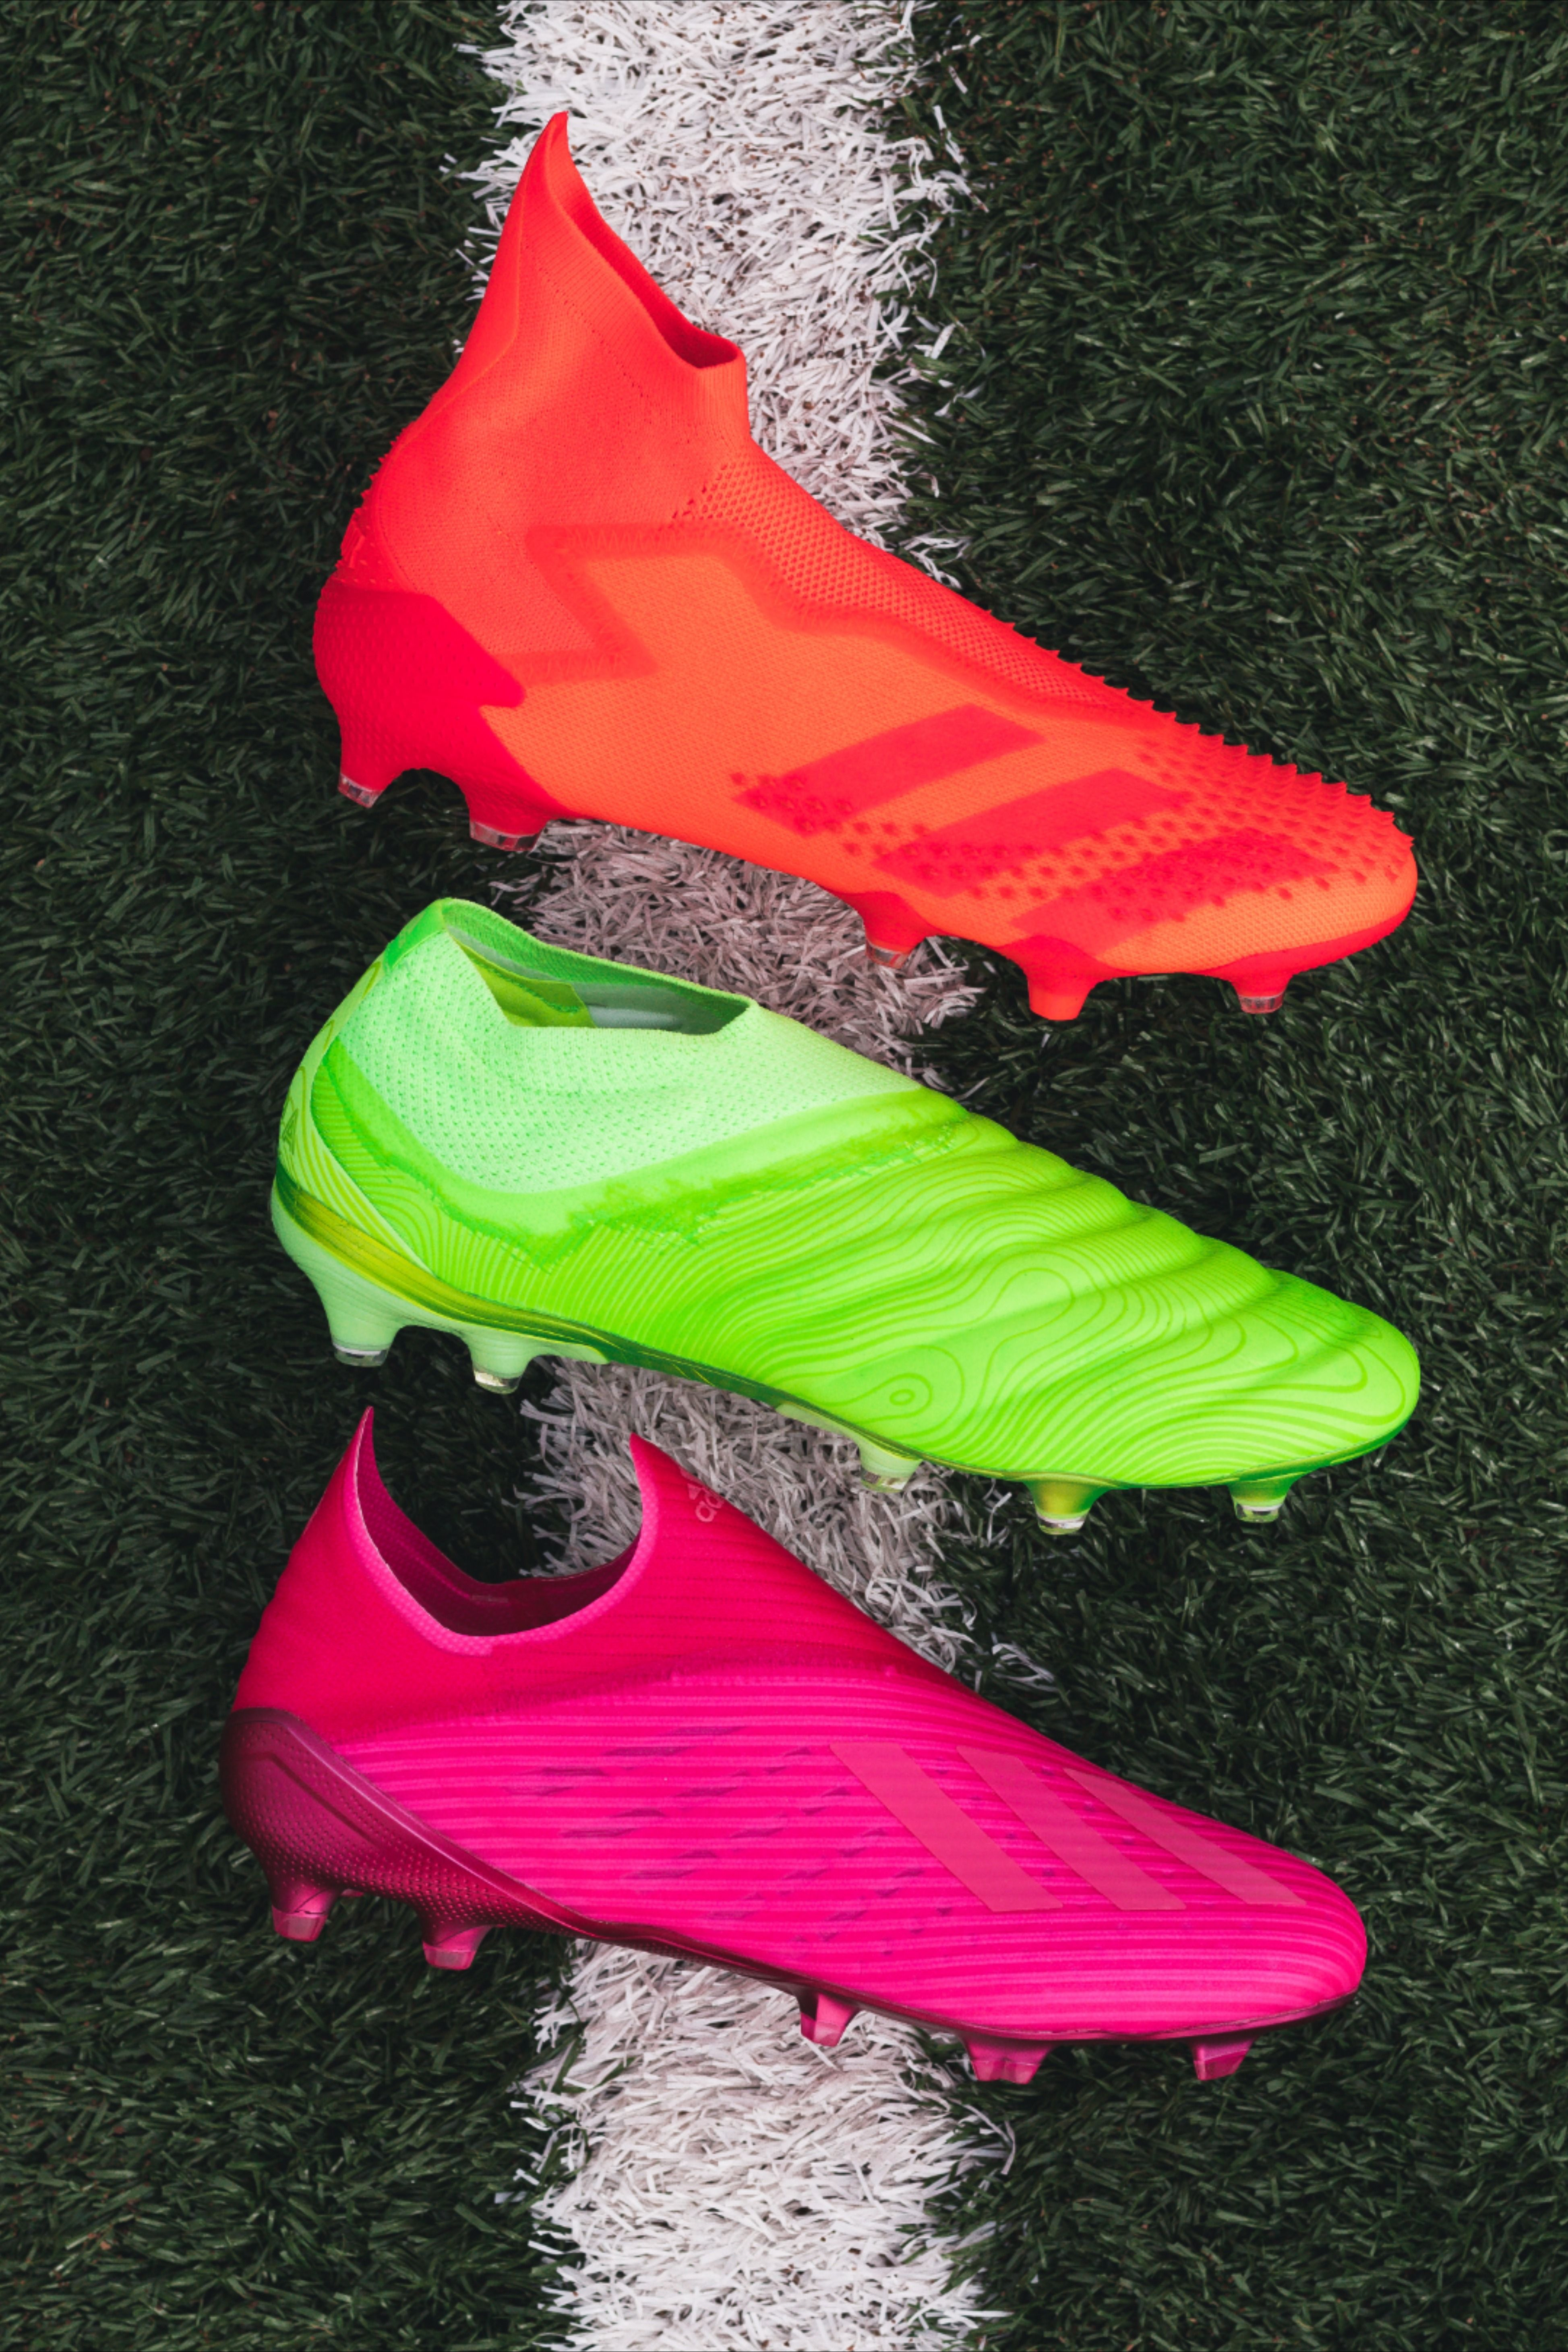 Adidas Locality Pack Predator20 X19 Copa20 Soccer Cleats In 2020 Soccer Cleats Adidas Soccer Cleats Cool Football Boots